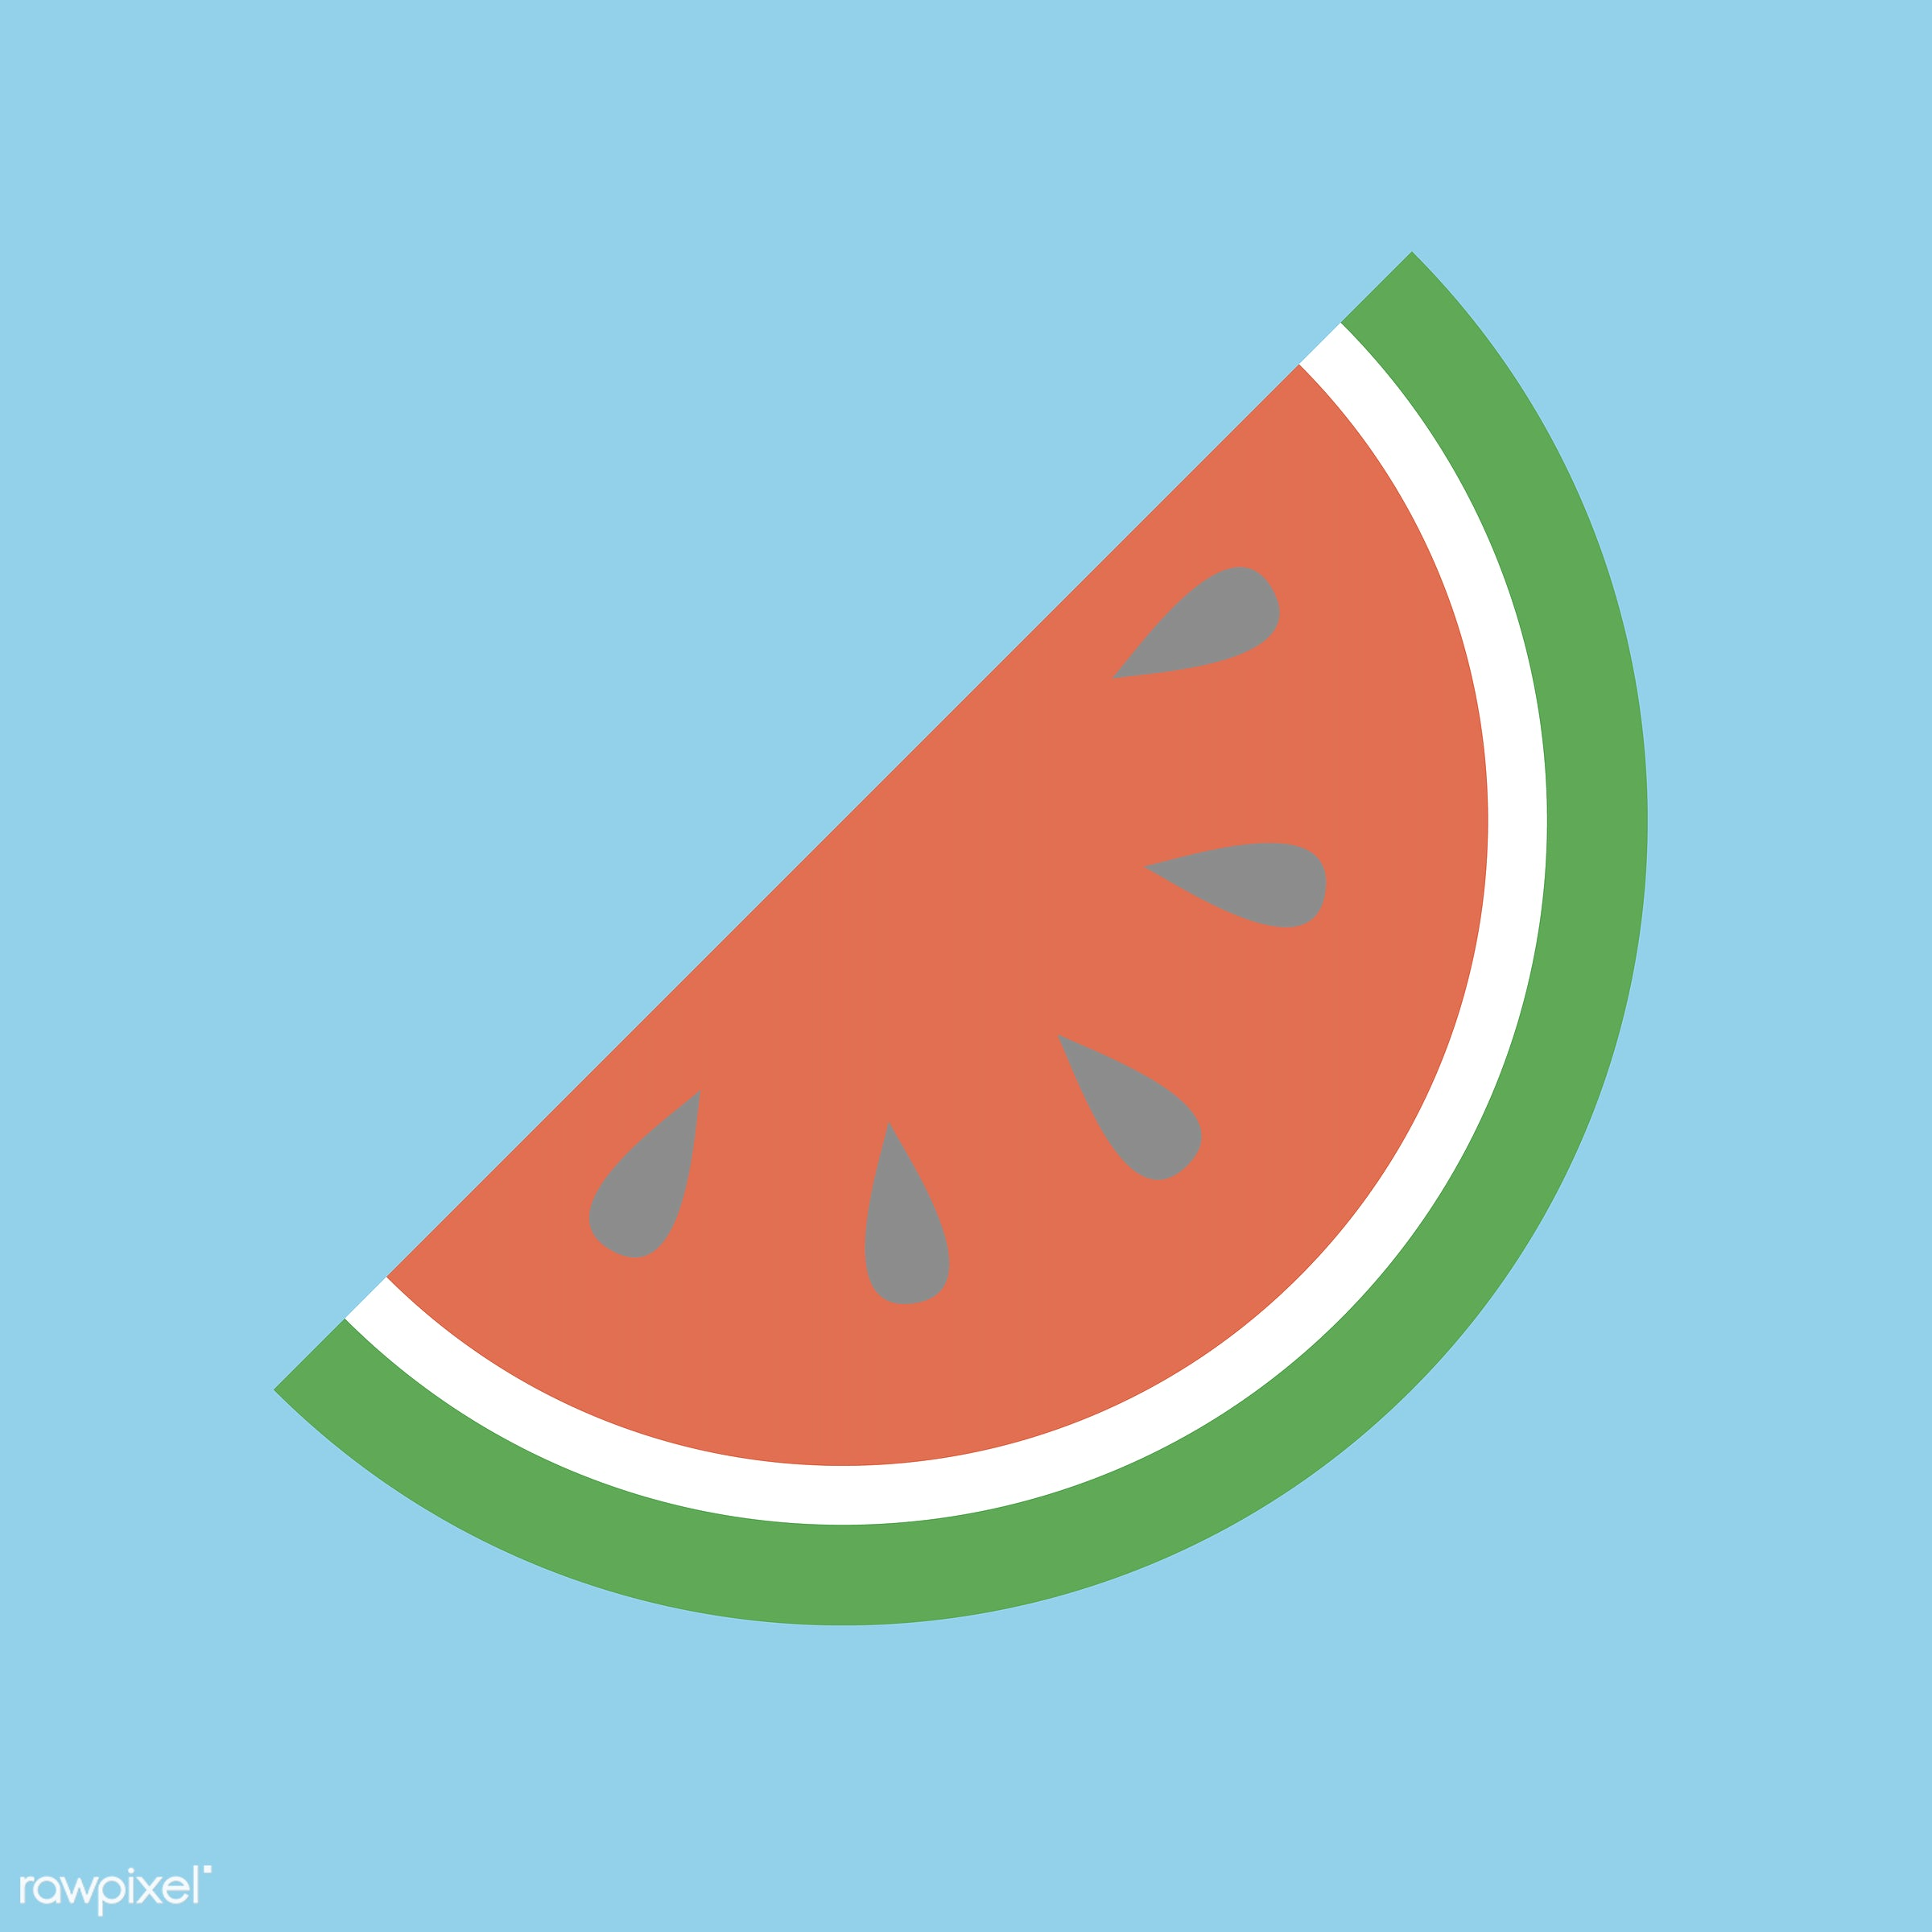 vector, illustration, graphic, cute, sweet, girly, pastel, fruit, watermelon, isolated